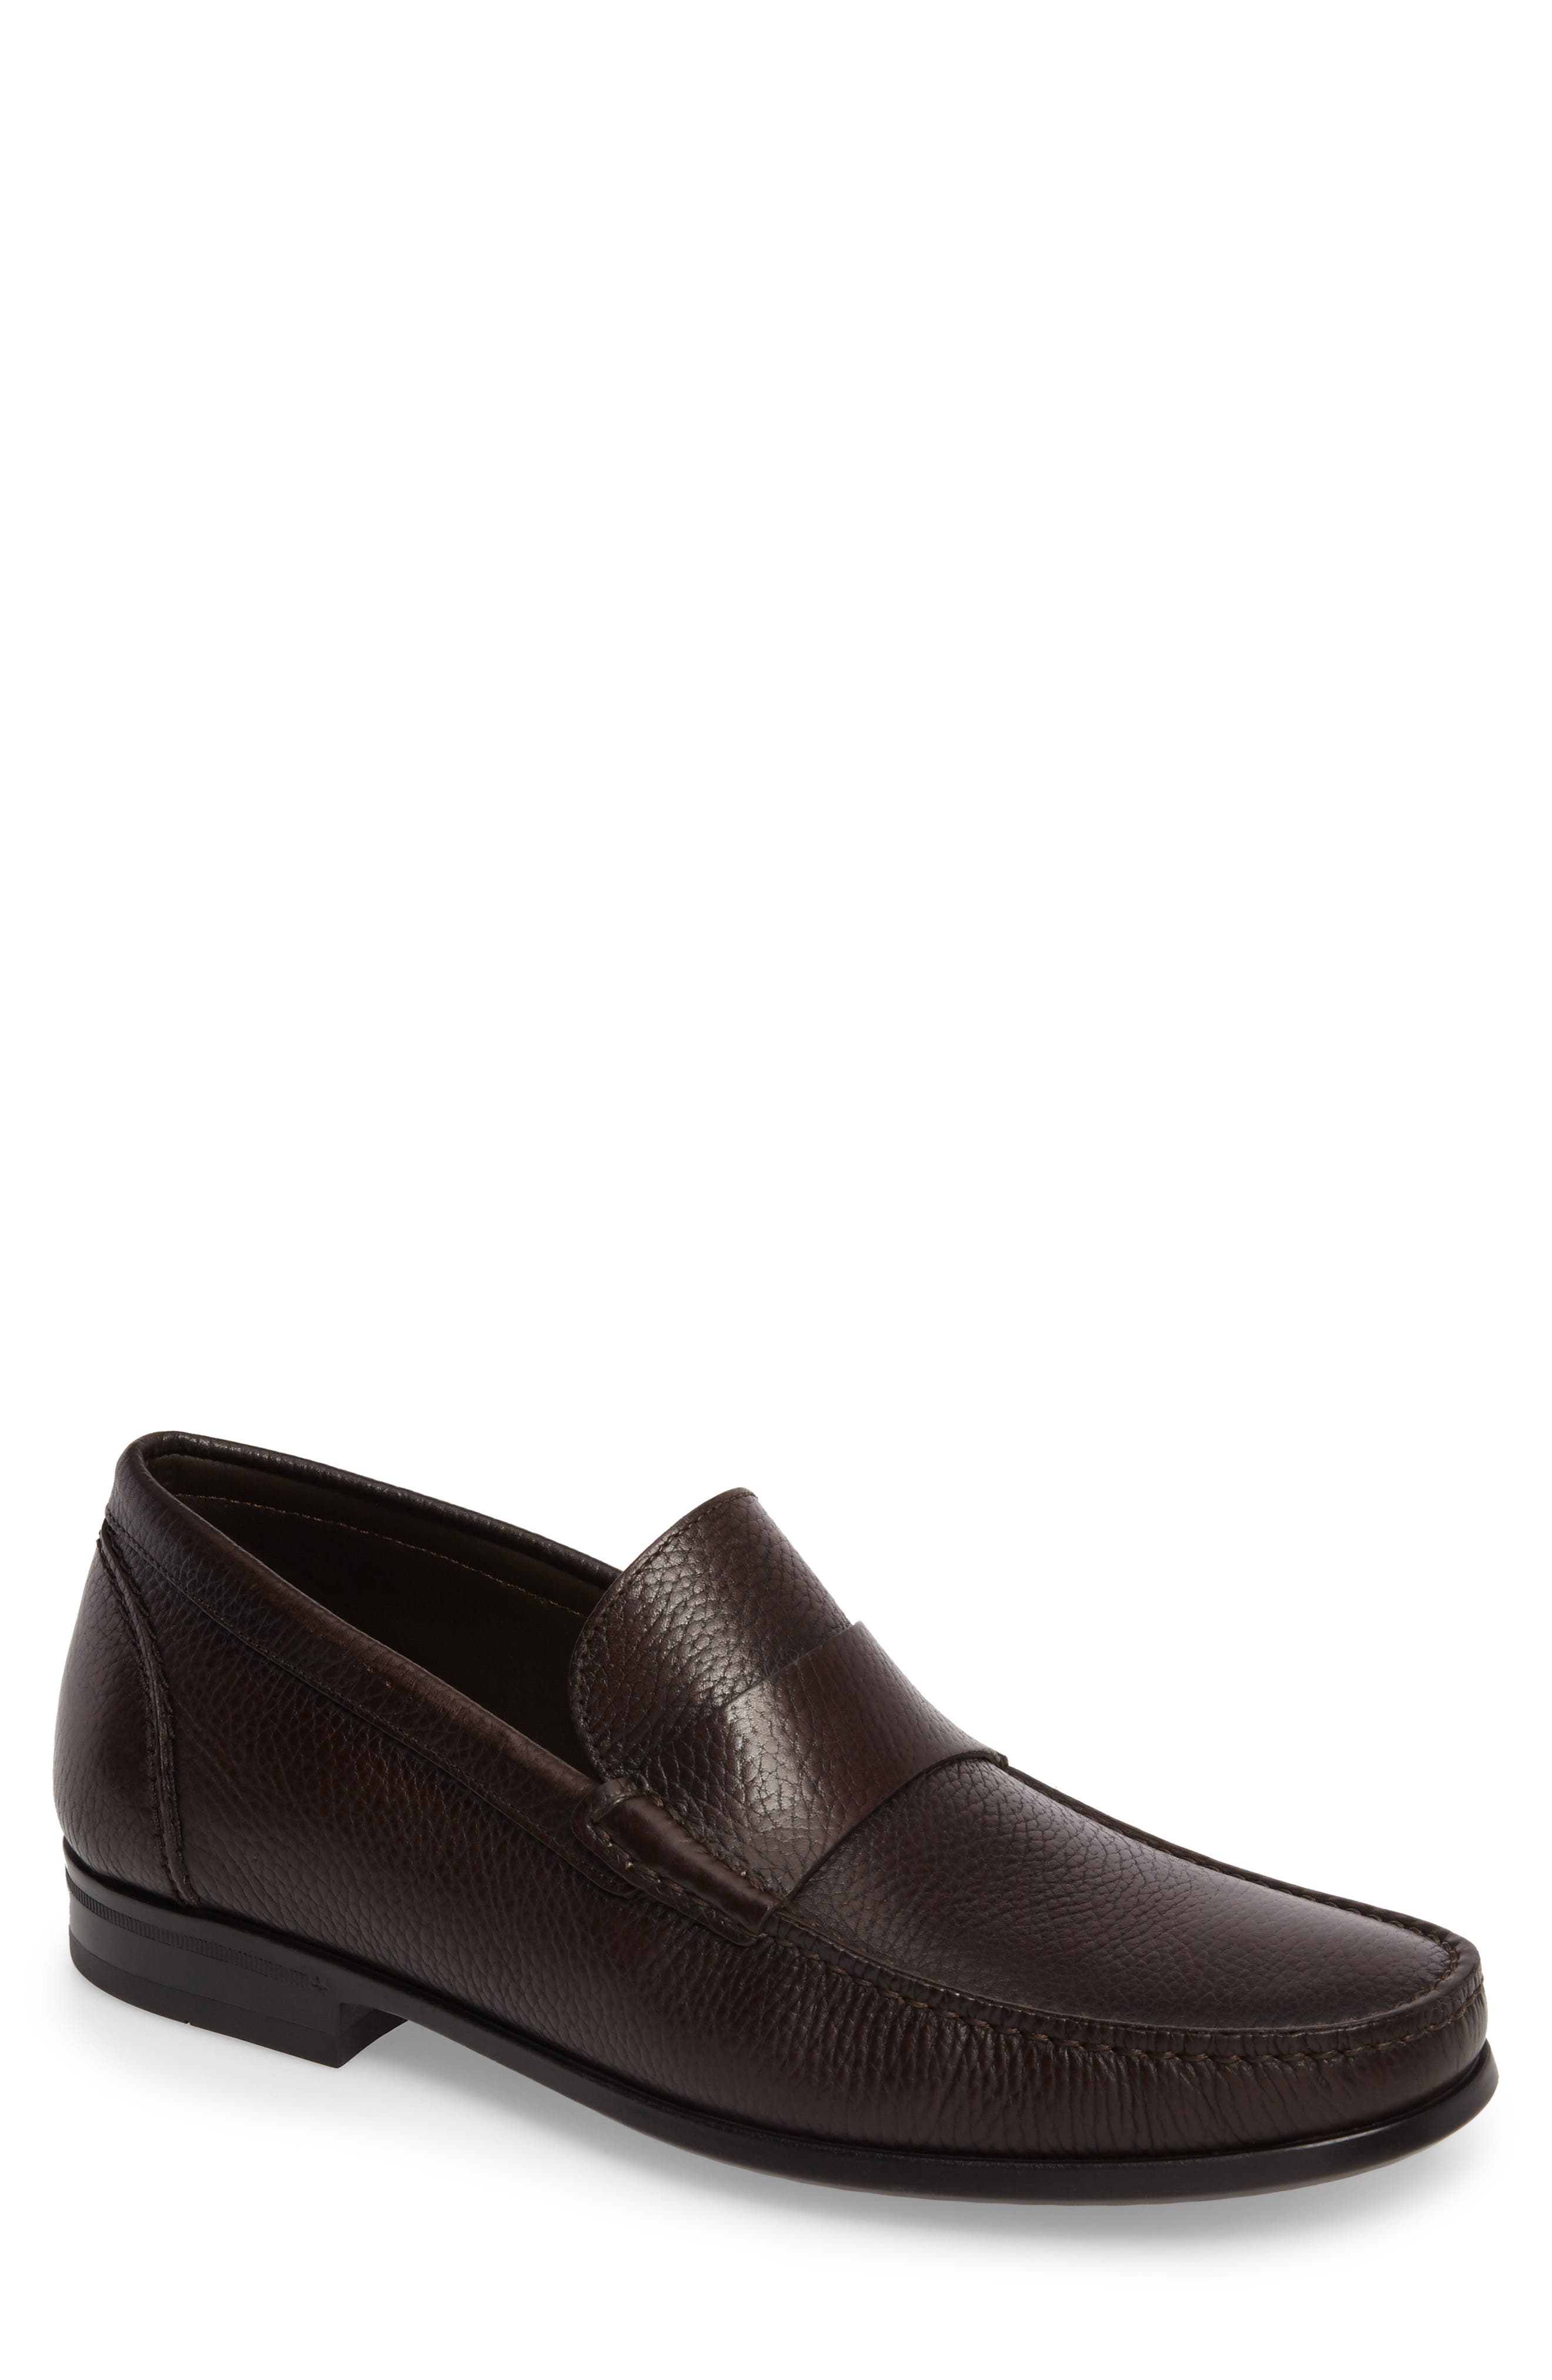 Savona Loafer,                             Main thumbnail 1, color,